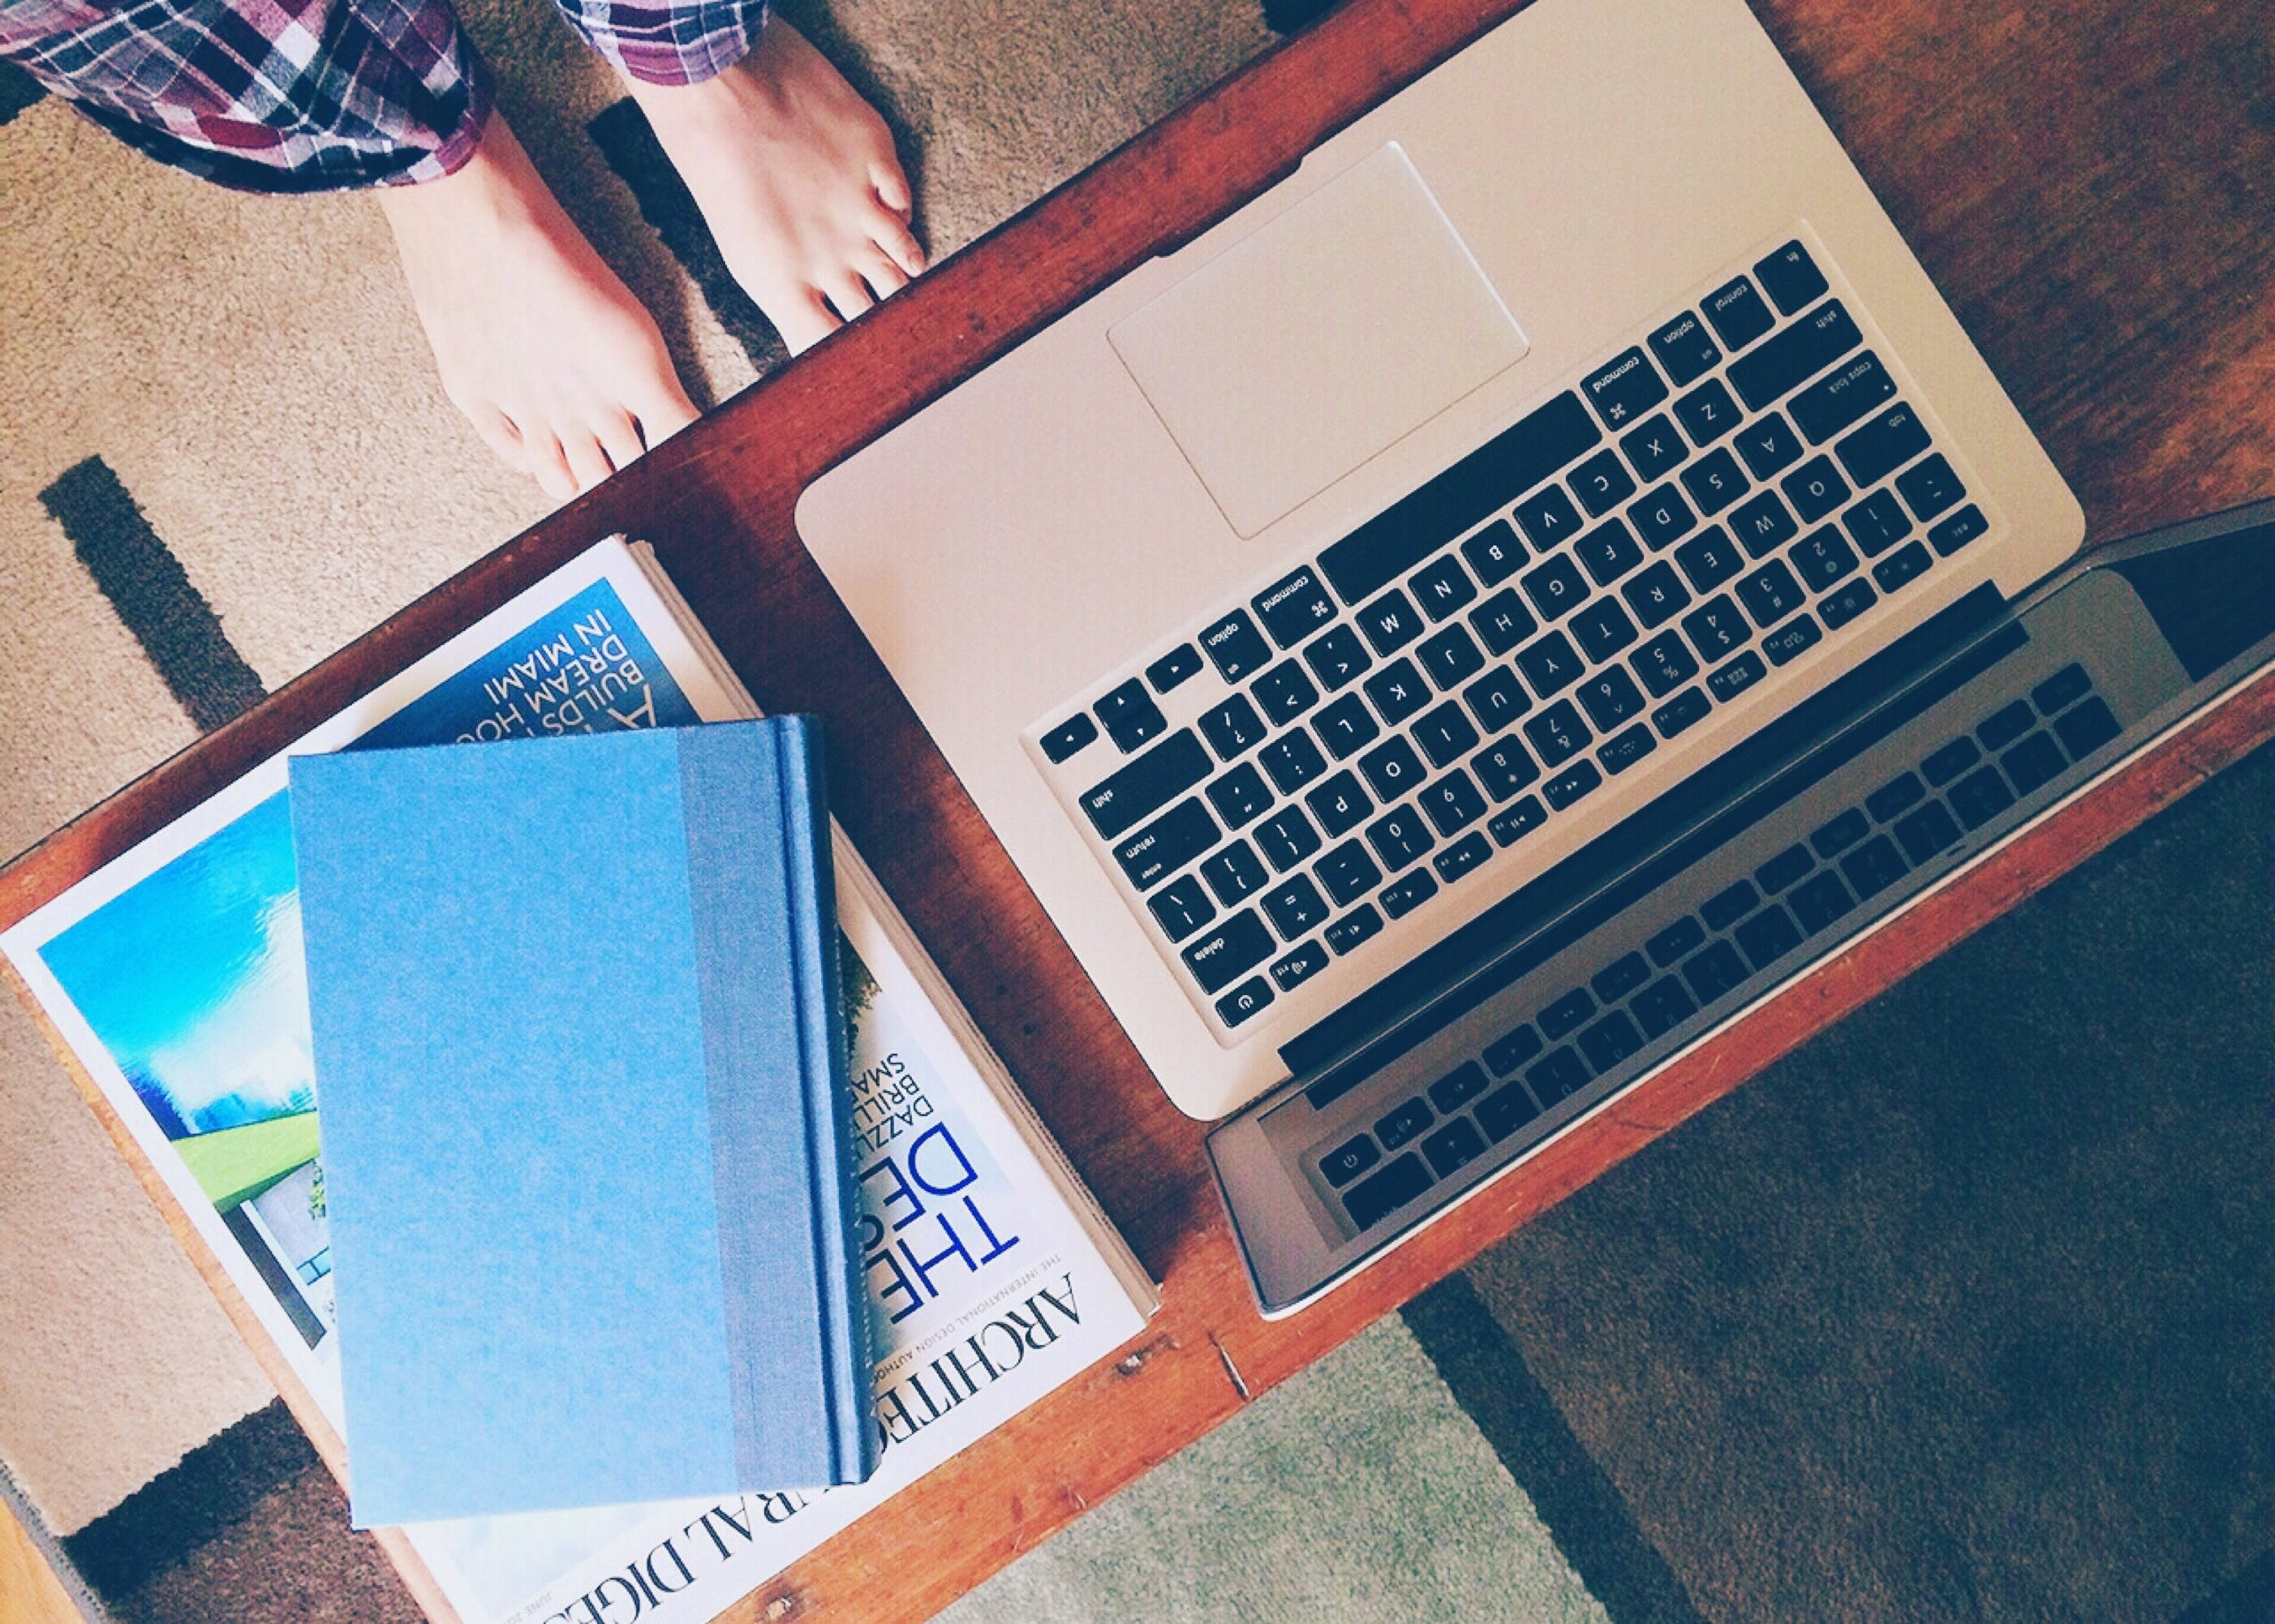 Macbook Air Beside 2 Books on Table